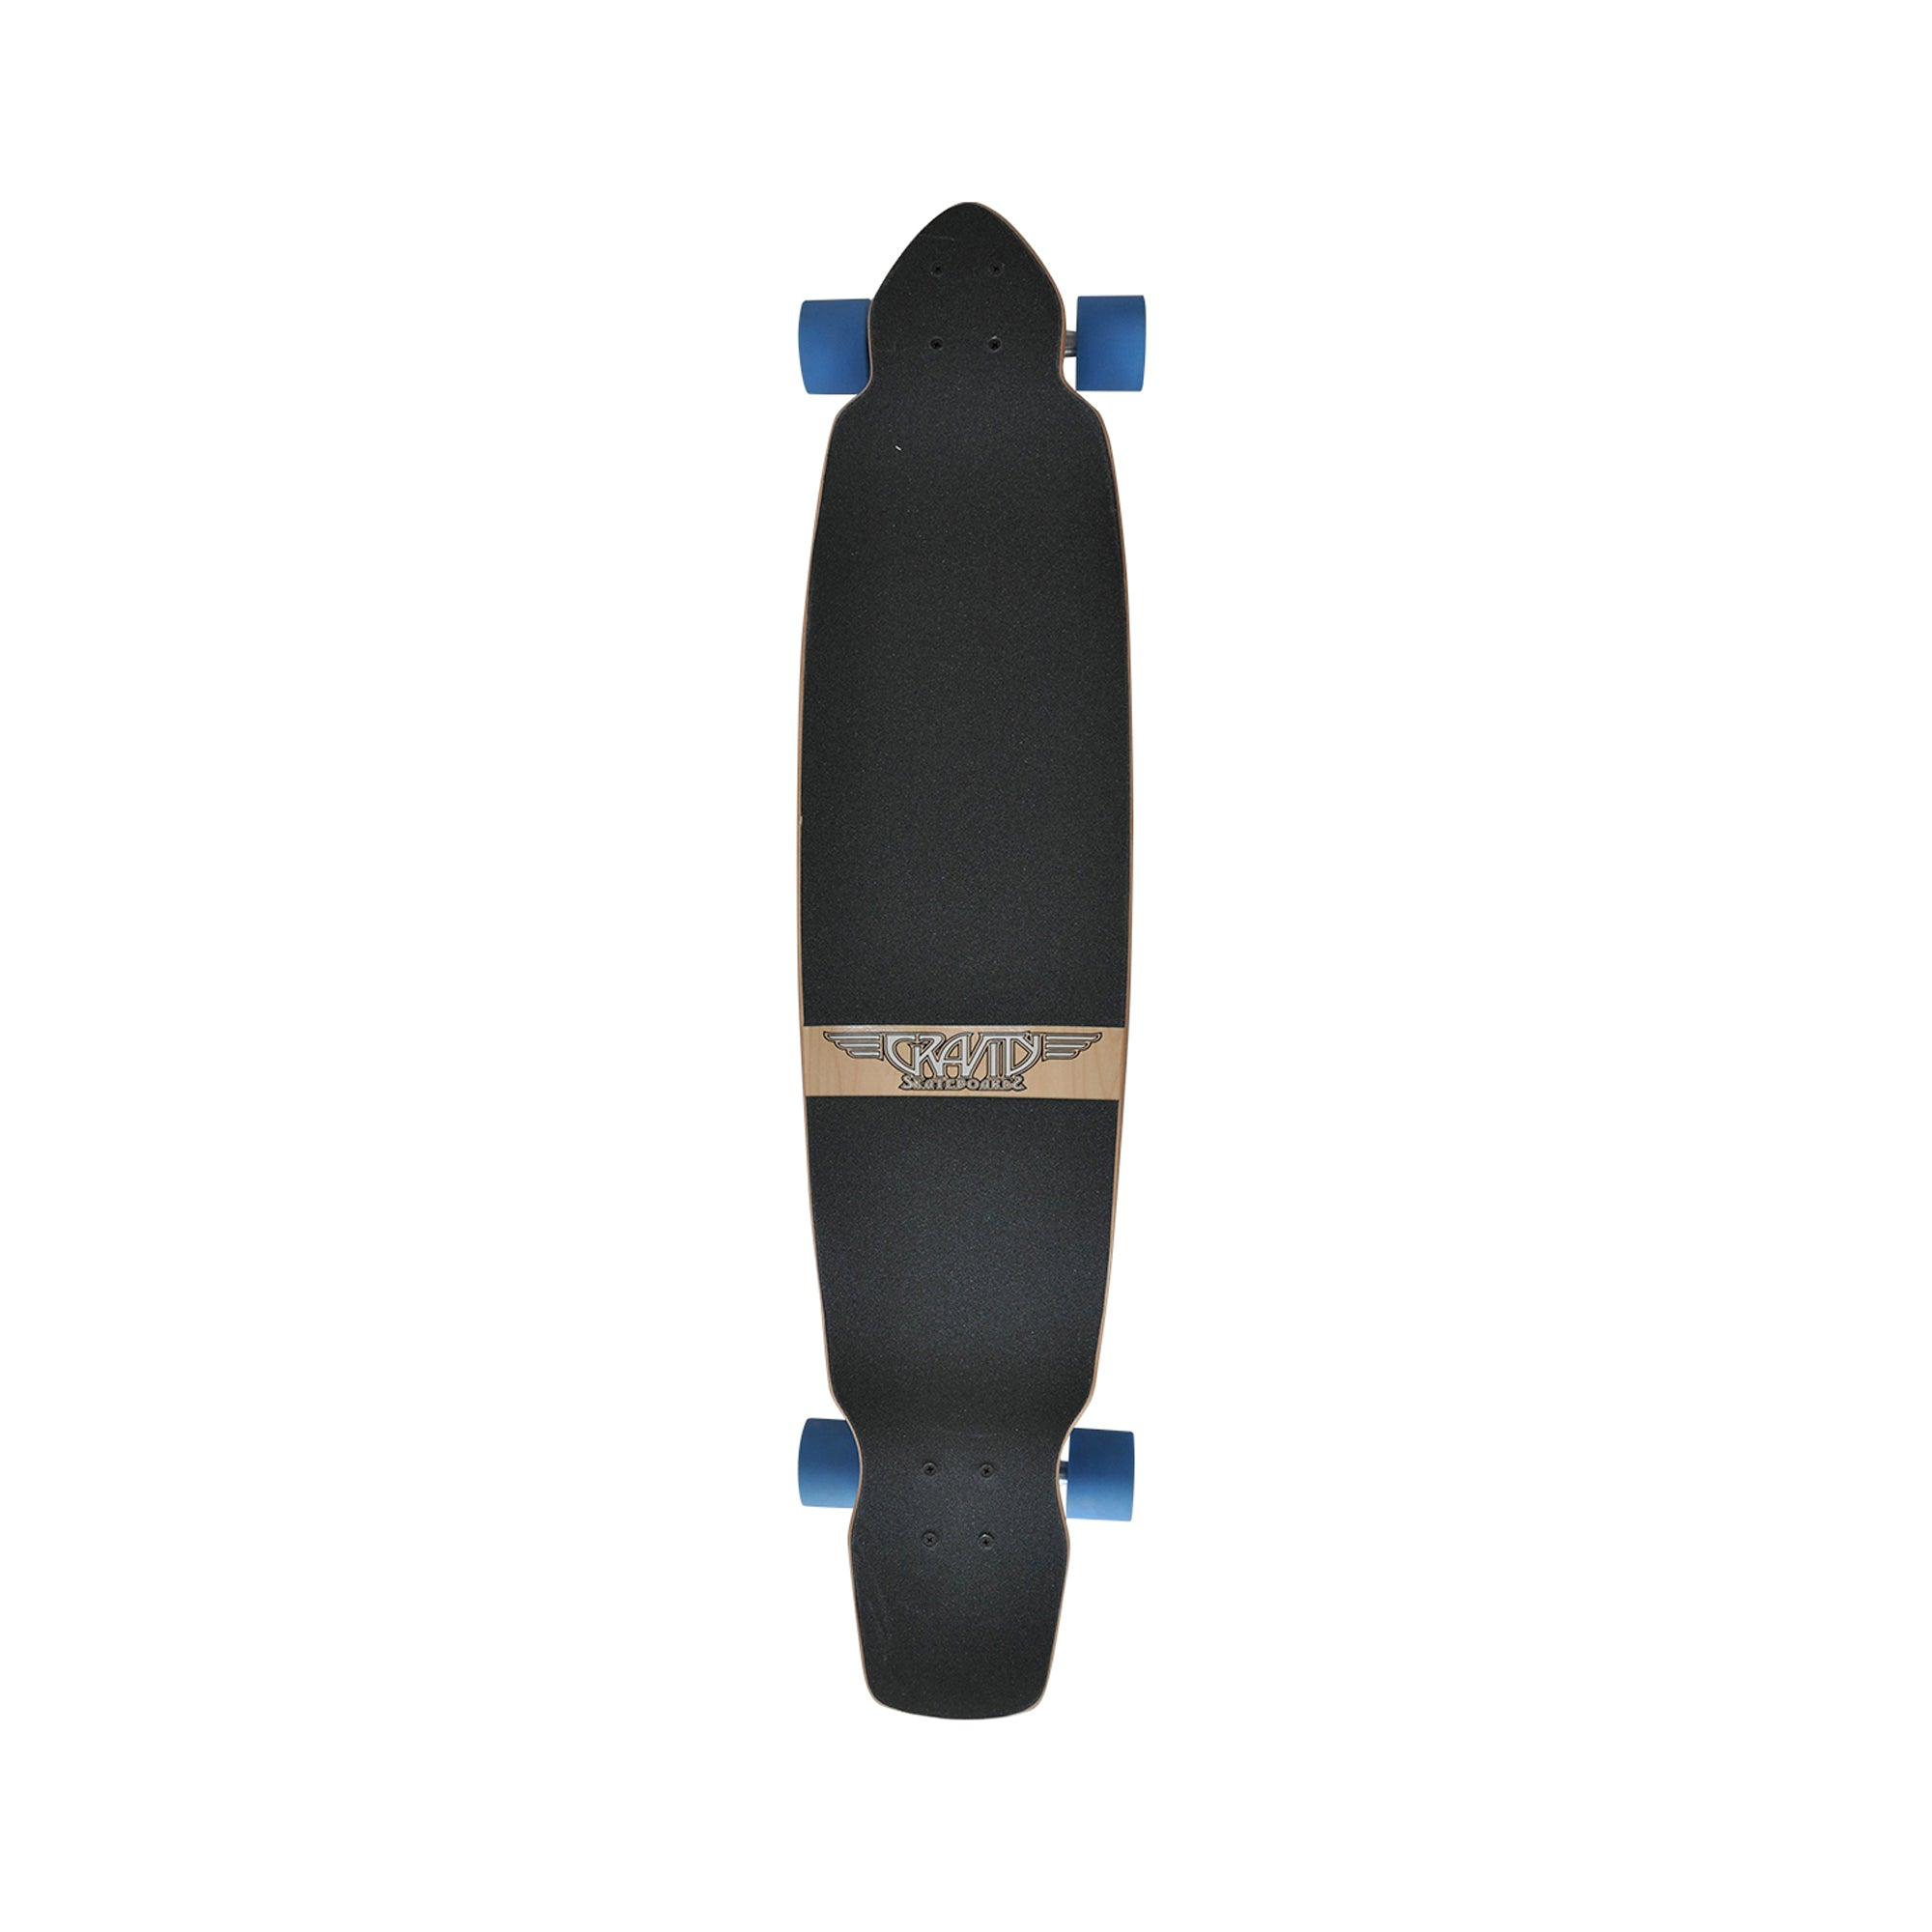 "Gravity Film Strip 43"" Longboard Skateboard"